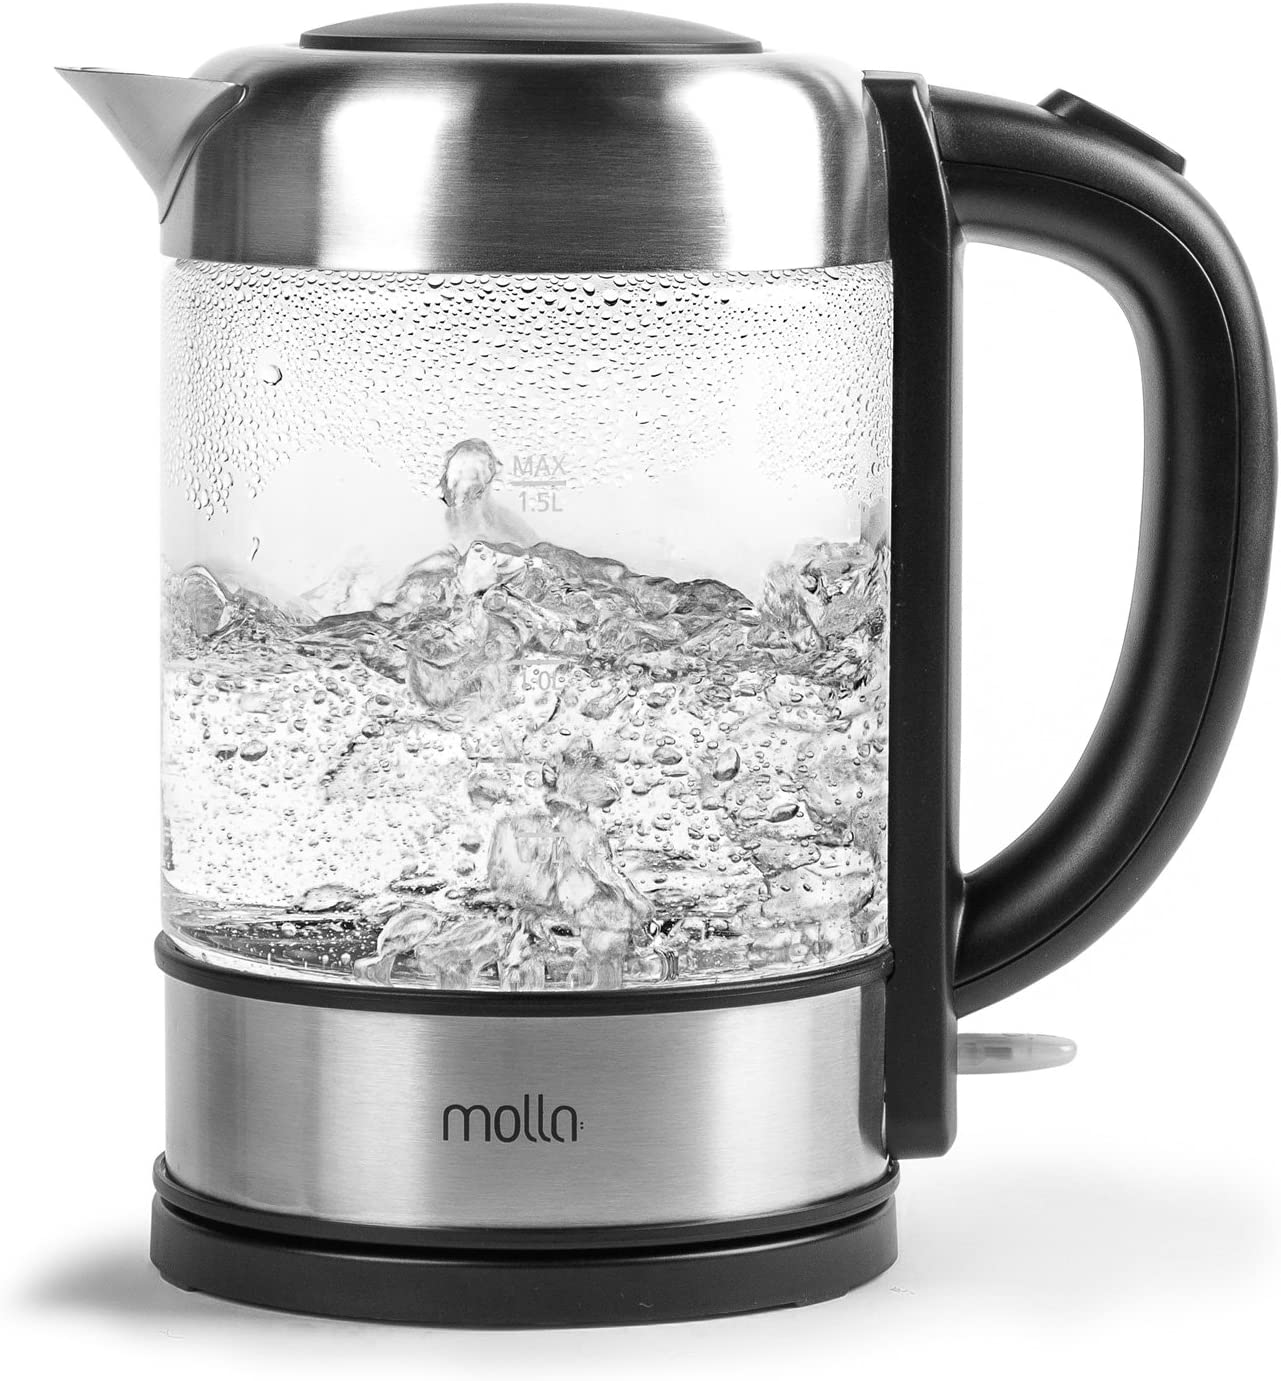 Molla Púro Electric Water Kettle